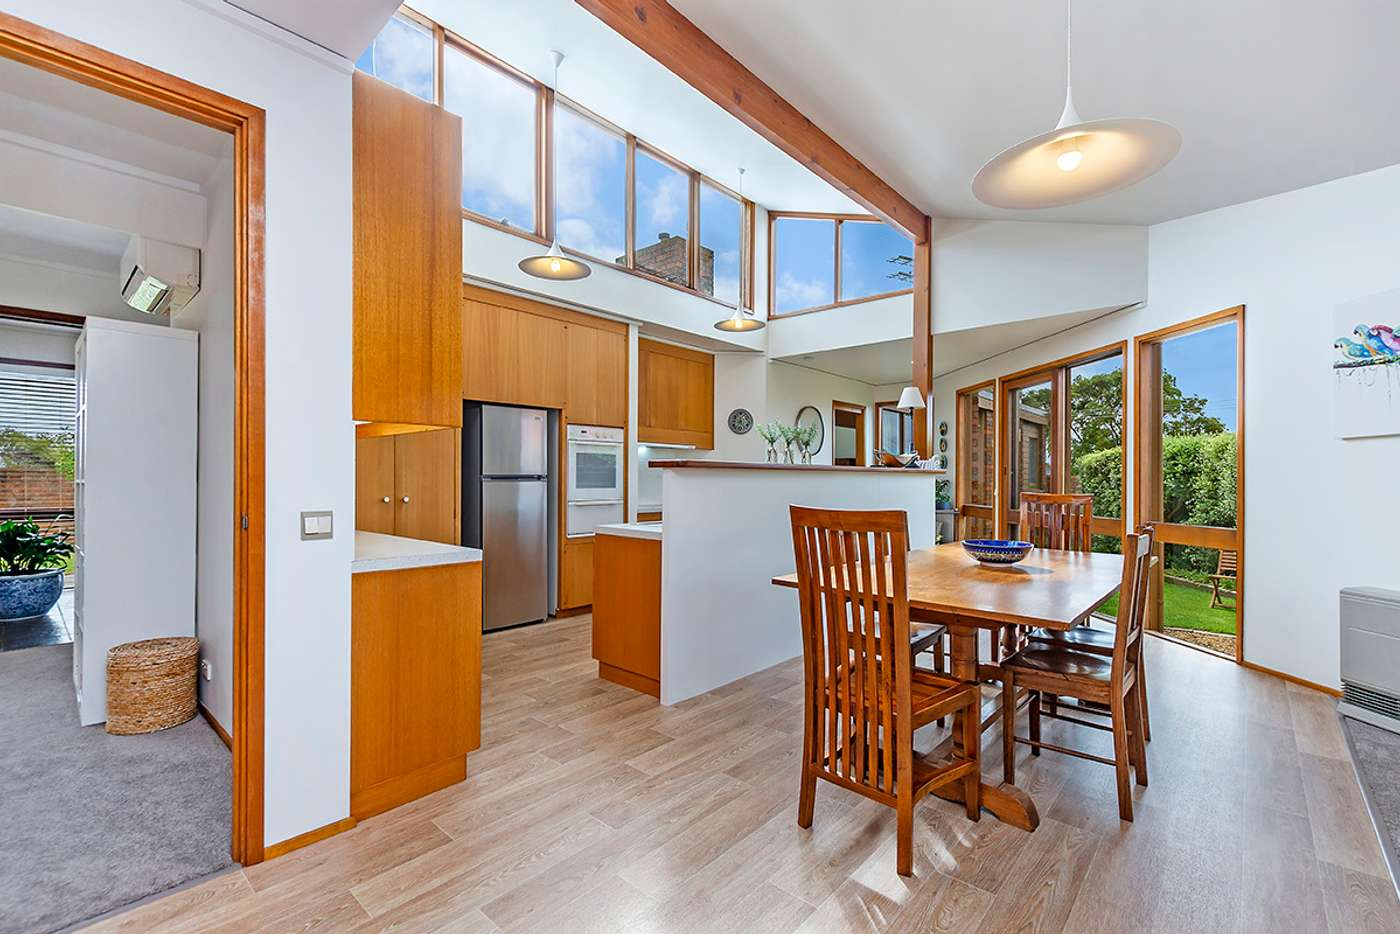 Sixth view of Homely house listing, 1 Balmoral Street, Portland VIC 3305